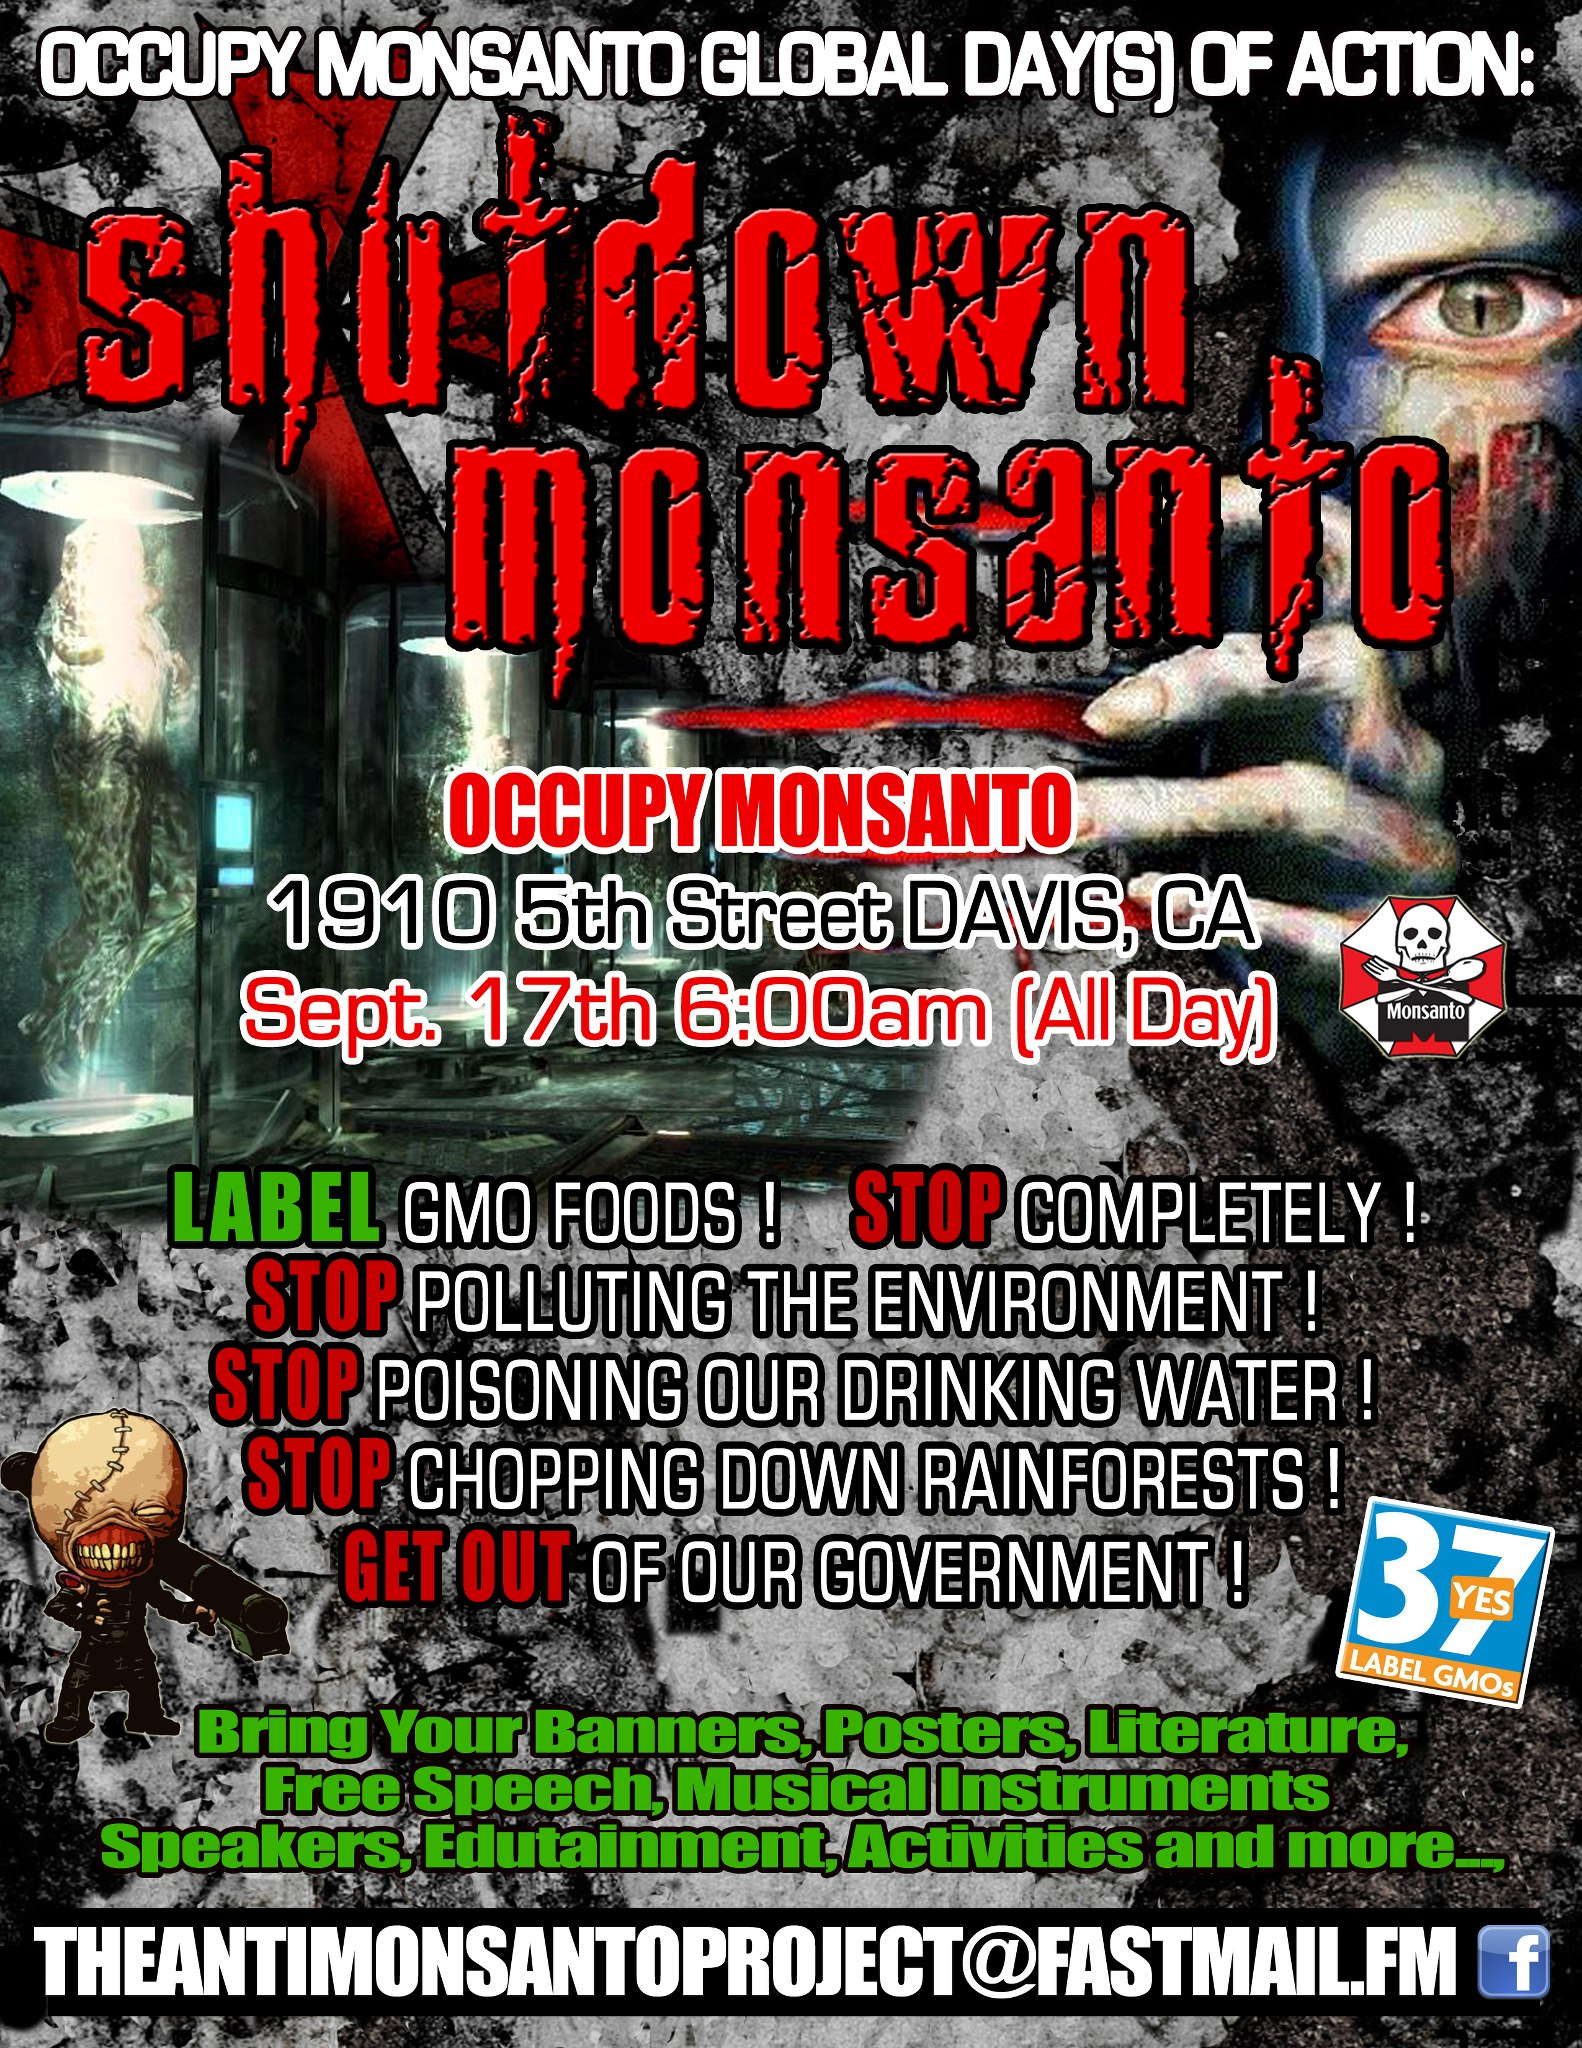 Shutdown Monsanto Davis CA Shutdown Monsanto   Davis, California   6:00AM, September 17, 2012 Shutdown Protest Occupy Graphic Flyer Flier Demonstration Davis California CA Anti Monsanto Project